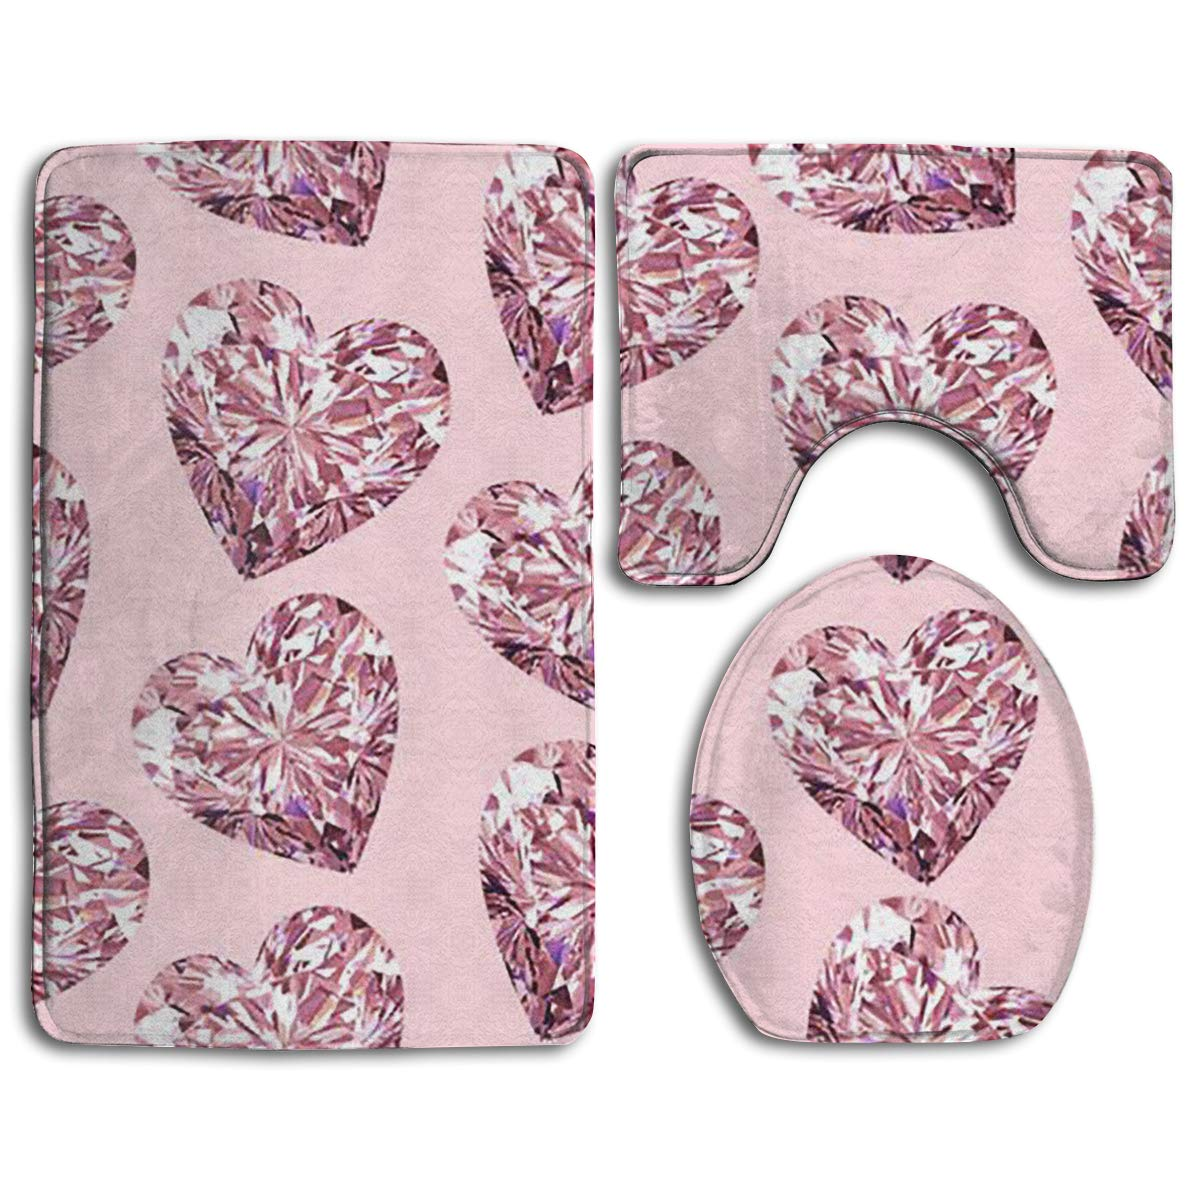 Awe Inspiring Amazon Com Magicai Bling Pink Heart 3 Piece Bathroom Rug Caraccident5 Cool Chair Designs And Ideas Caraccident5Info